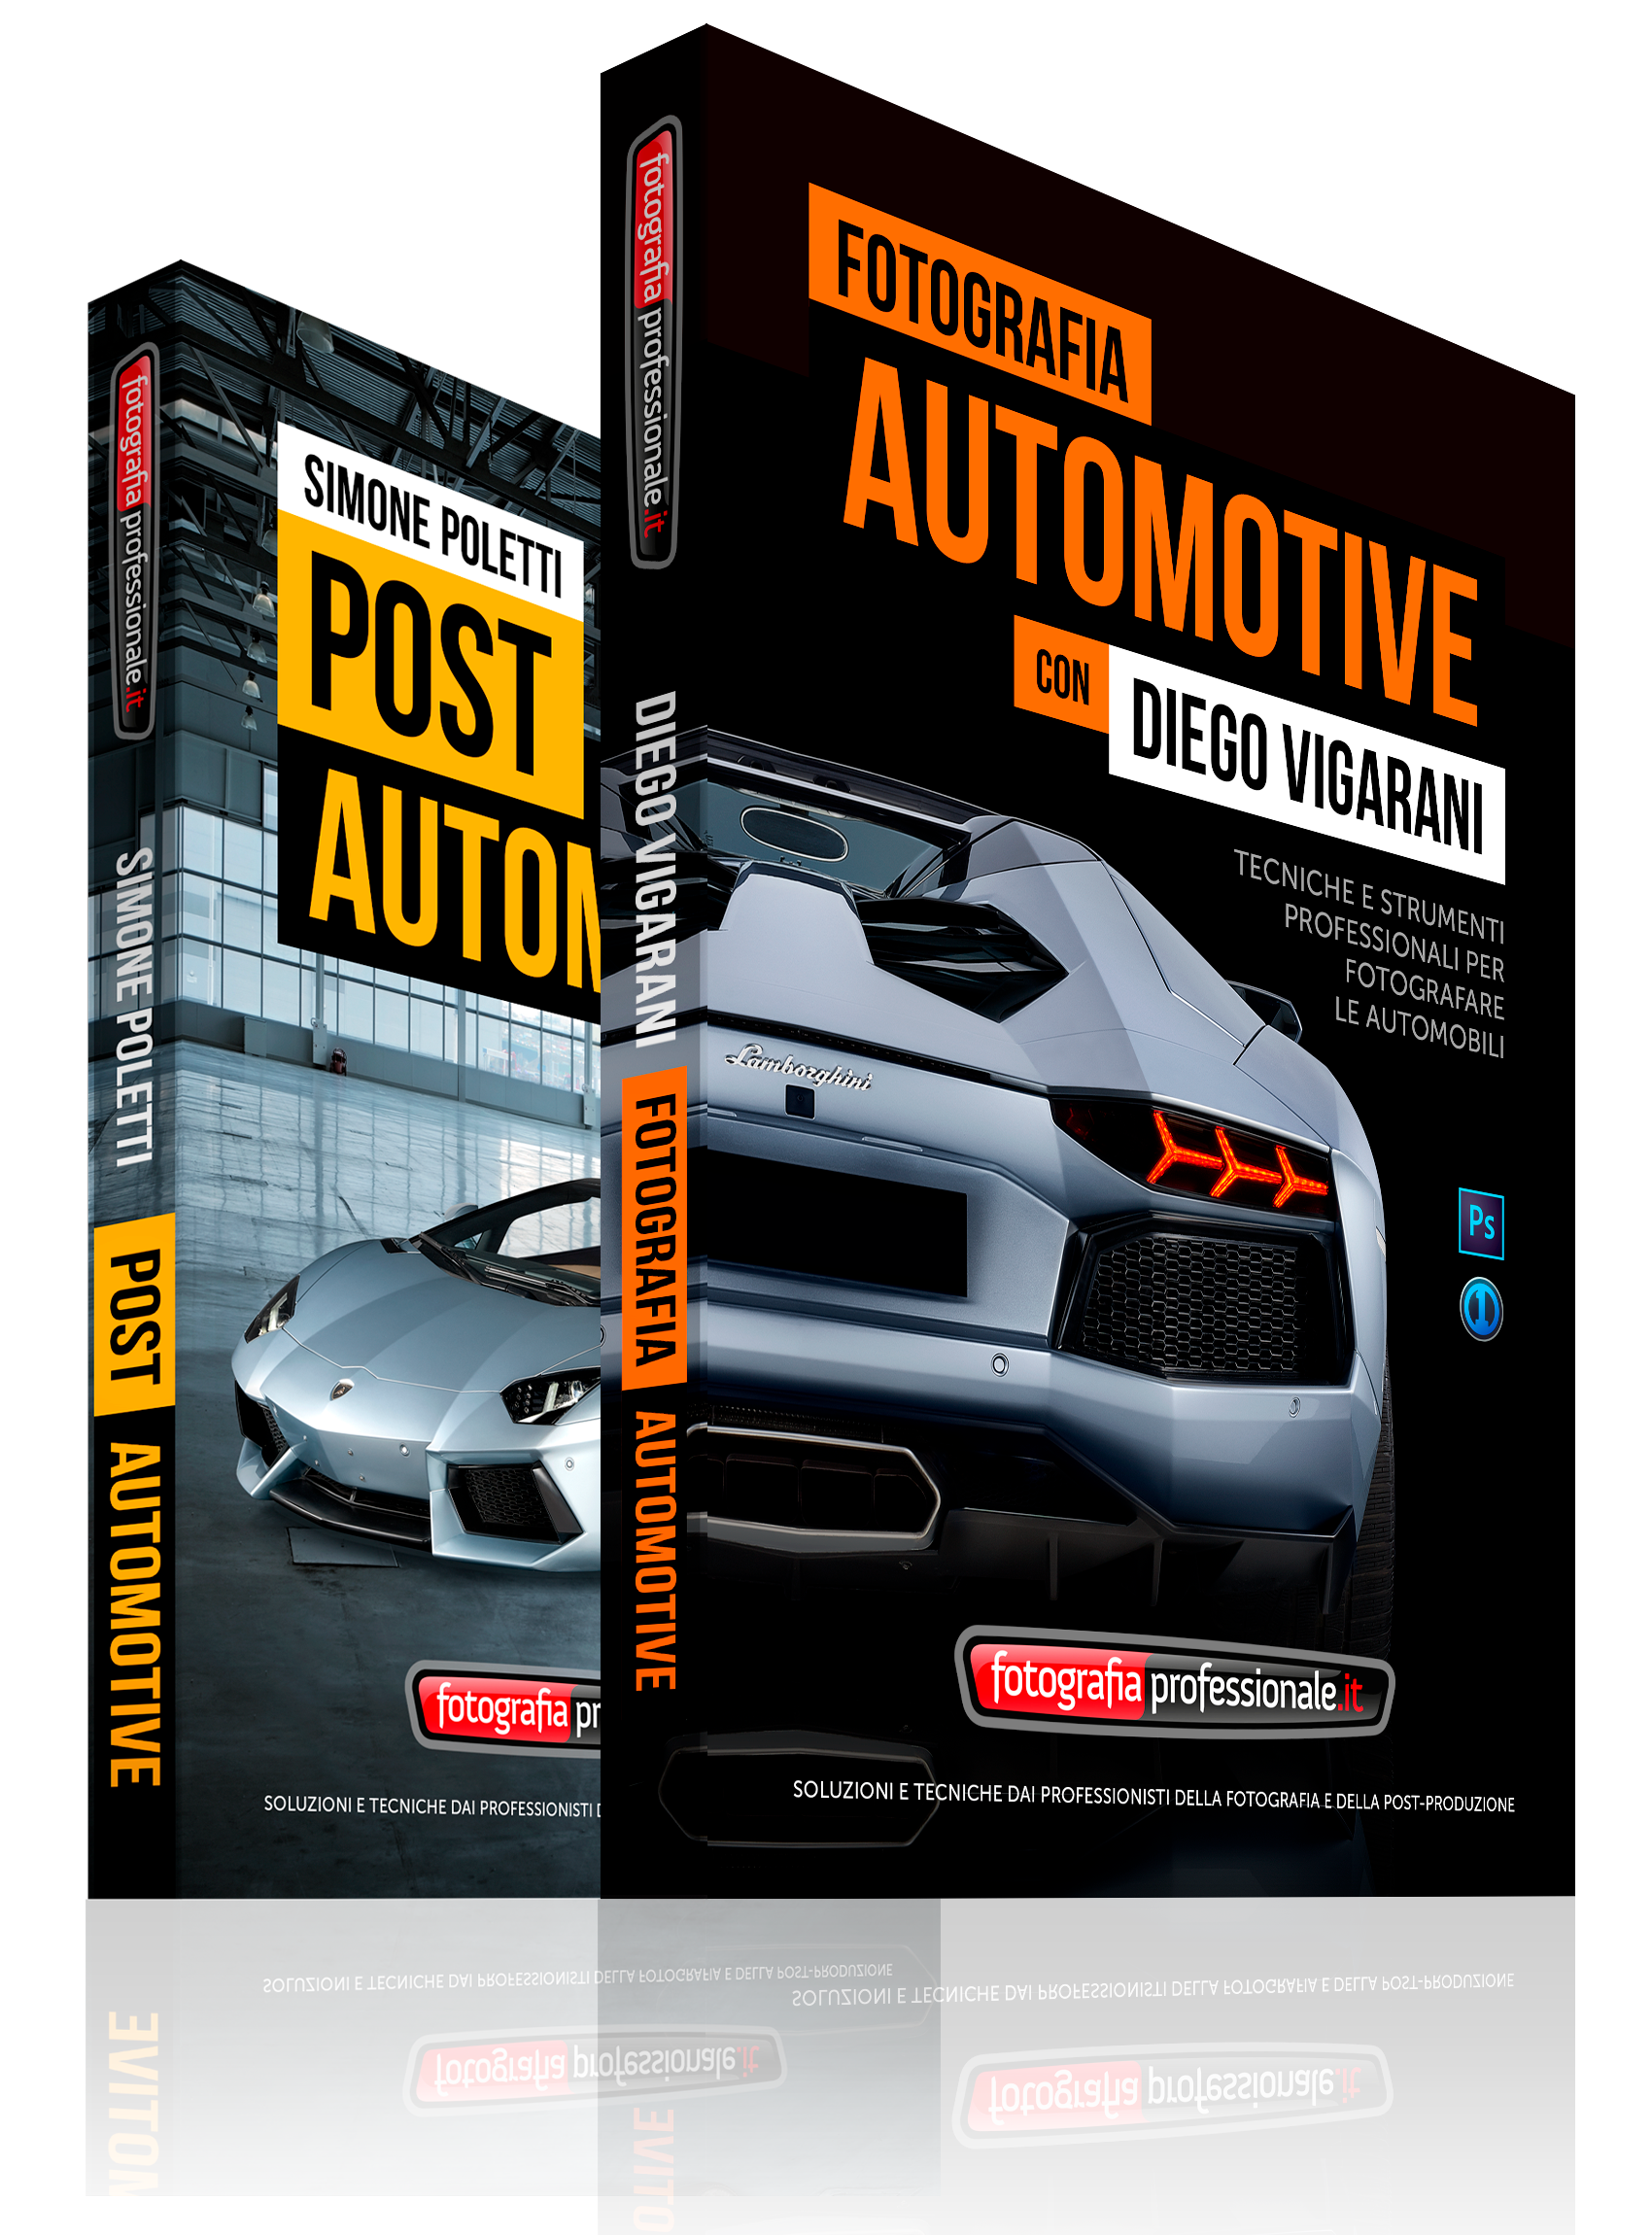 Fotografia e Post Automotive - Video-corsi in bundle di FotografiaProfessionale.it